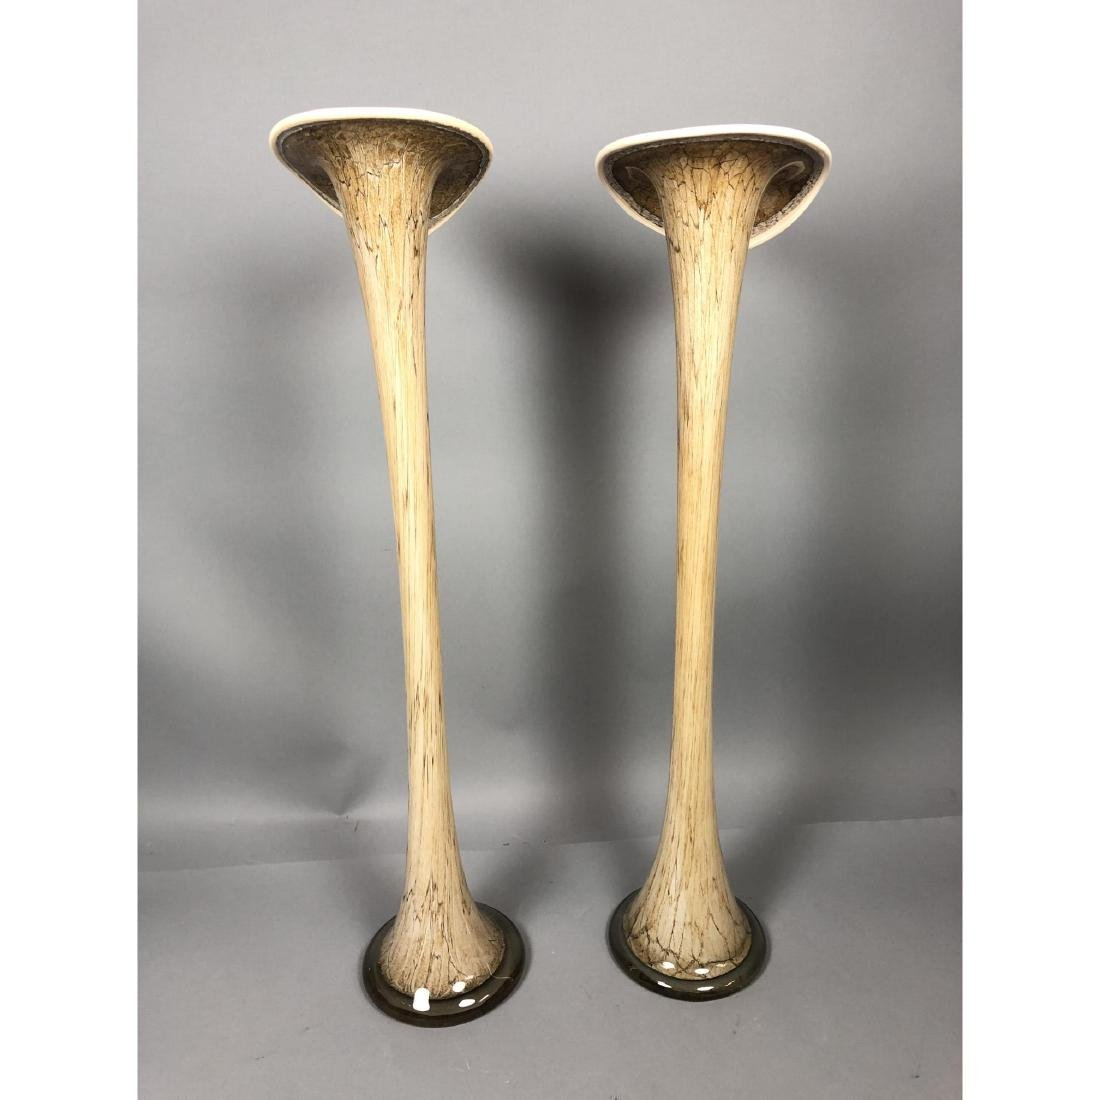 Pr Murano Art Glass Tall Lily Shaped Vases. Swoll - 6